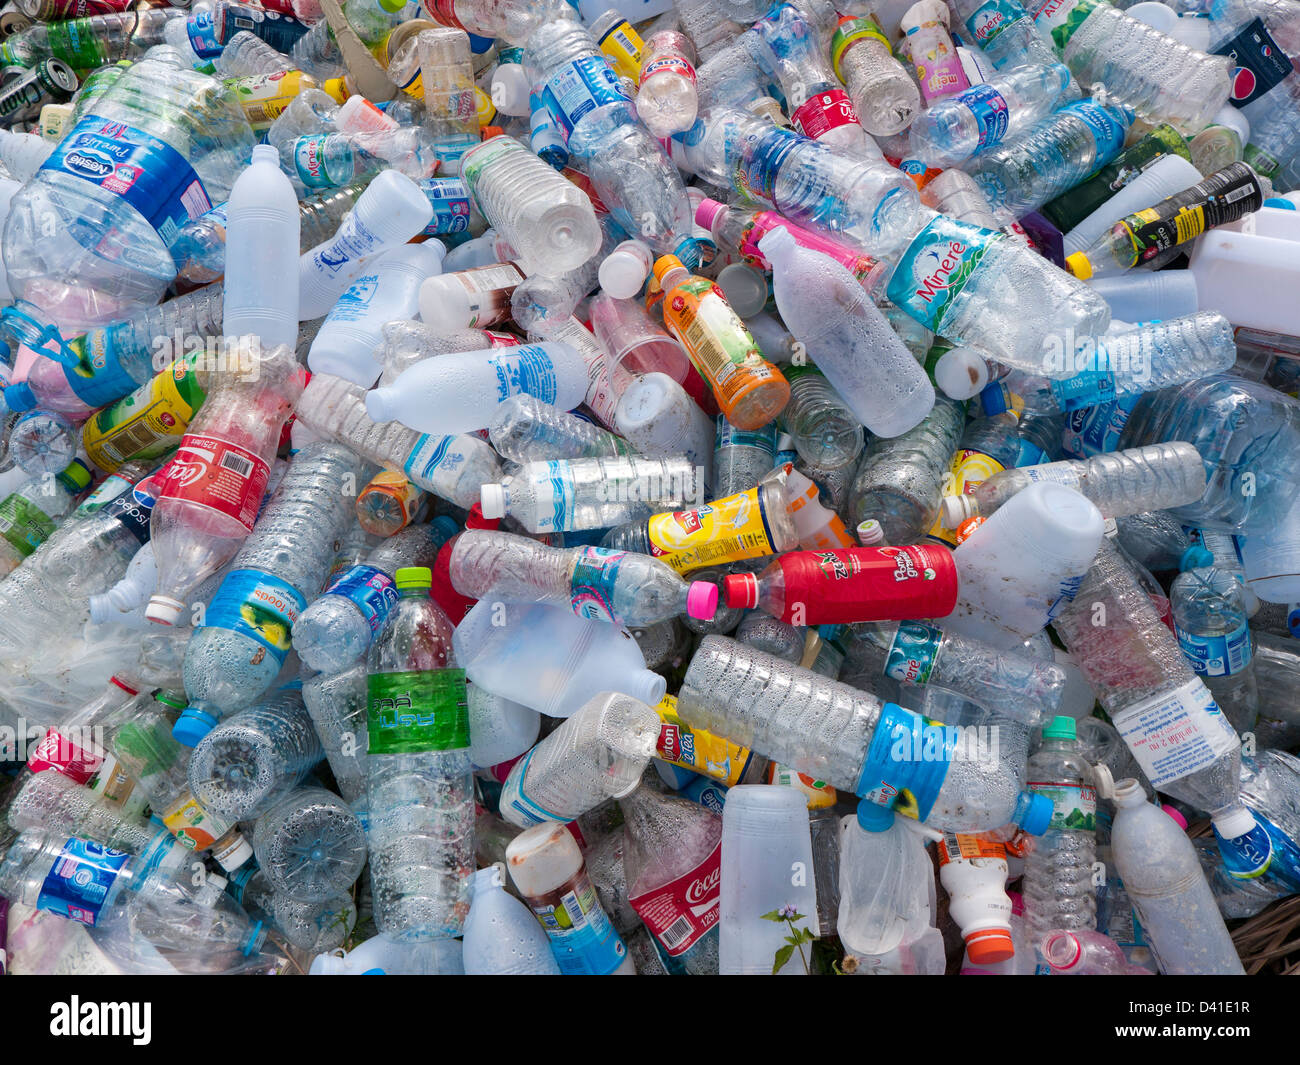 Plastic Bottle Recycling Part - 15: Plastic Bottles For Recycling In Thailand